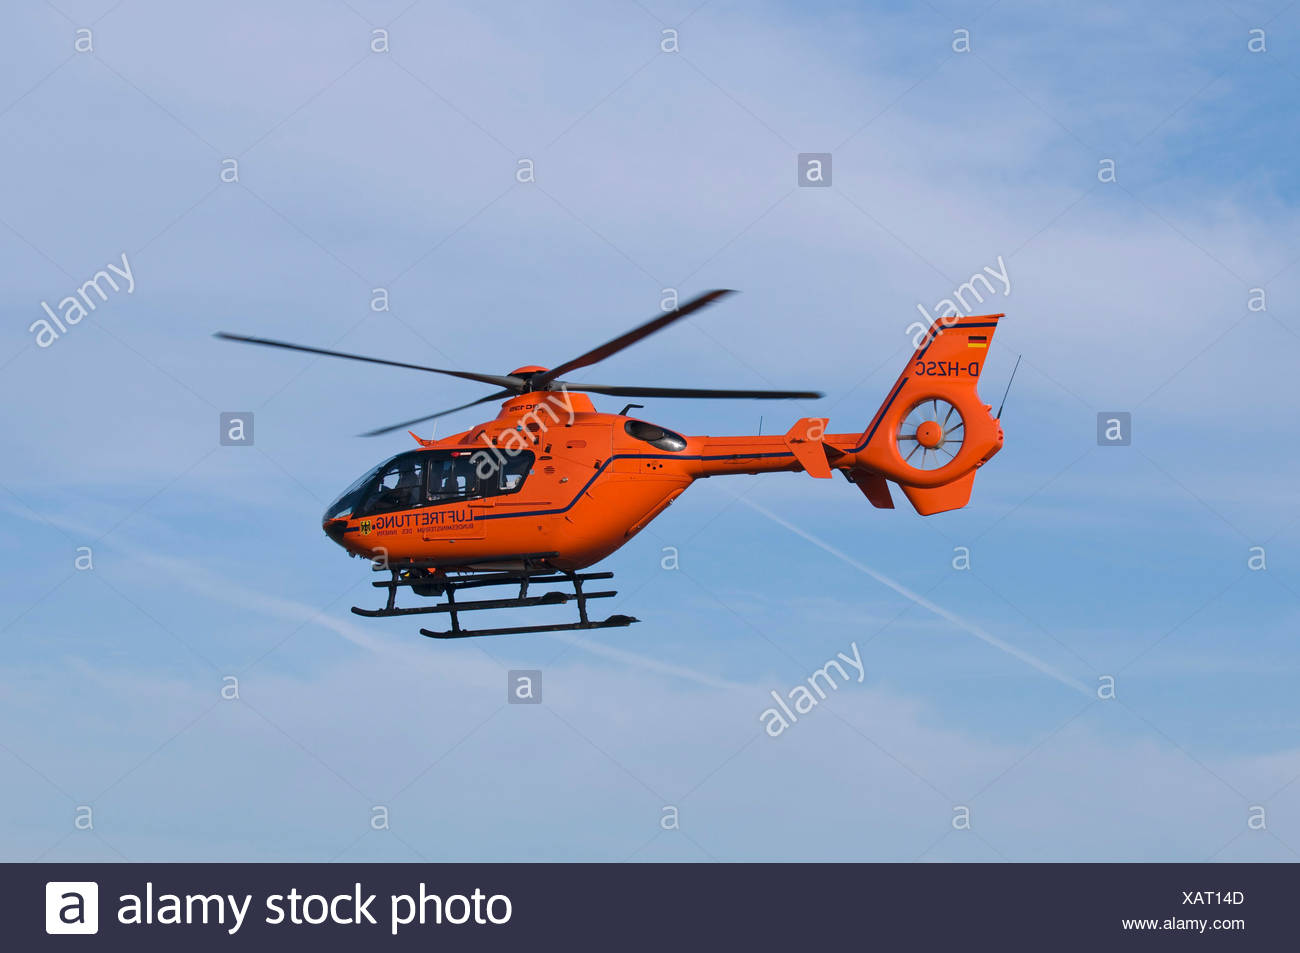 Orange helicopter of the air rescue in flight, rescue helicopter Christoph 3 - Stock Image